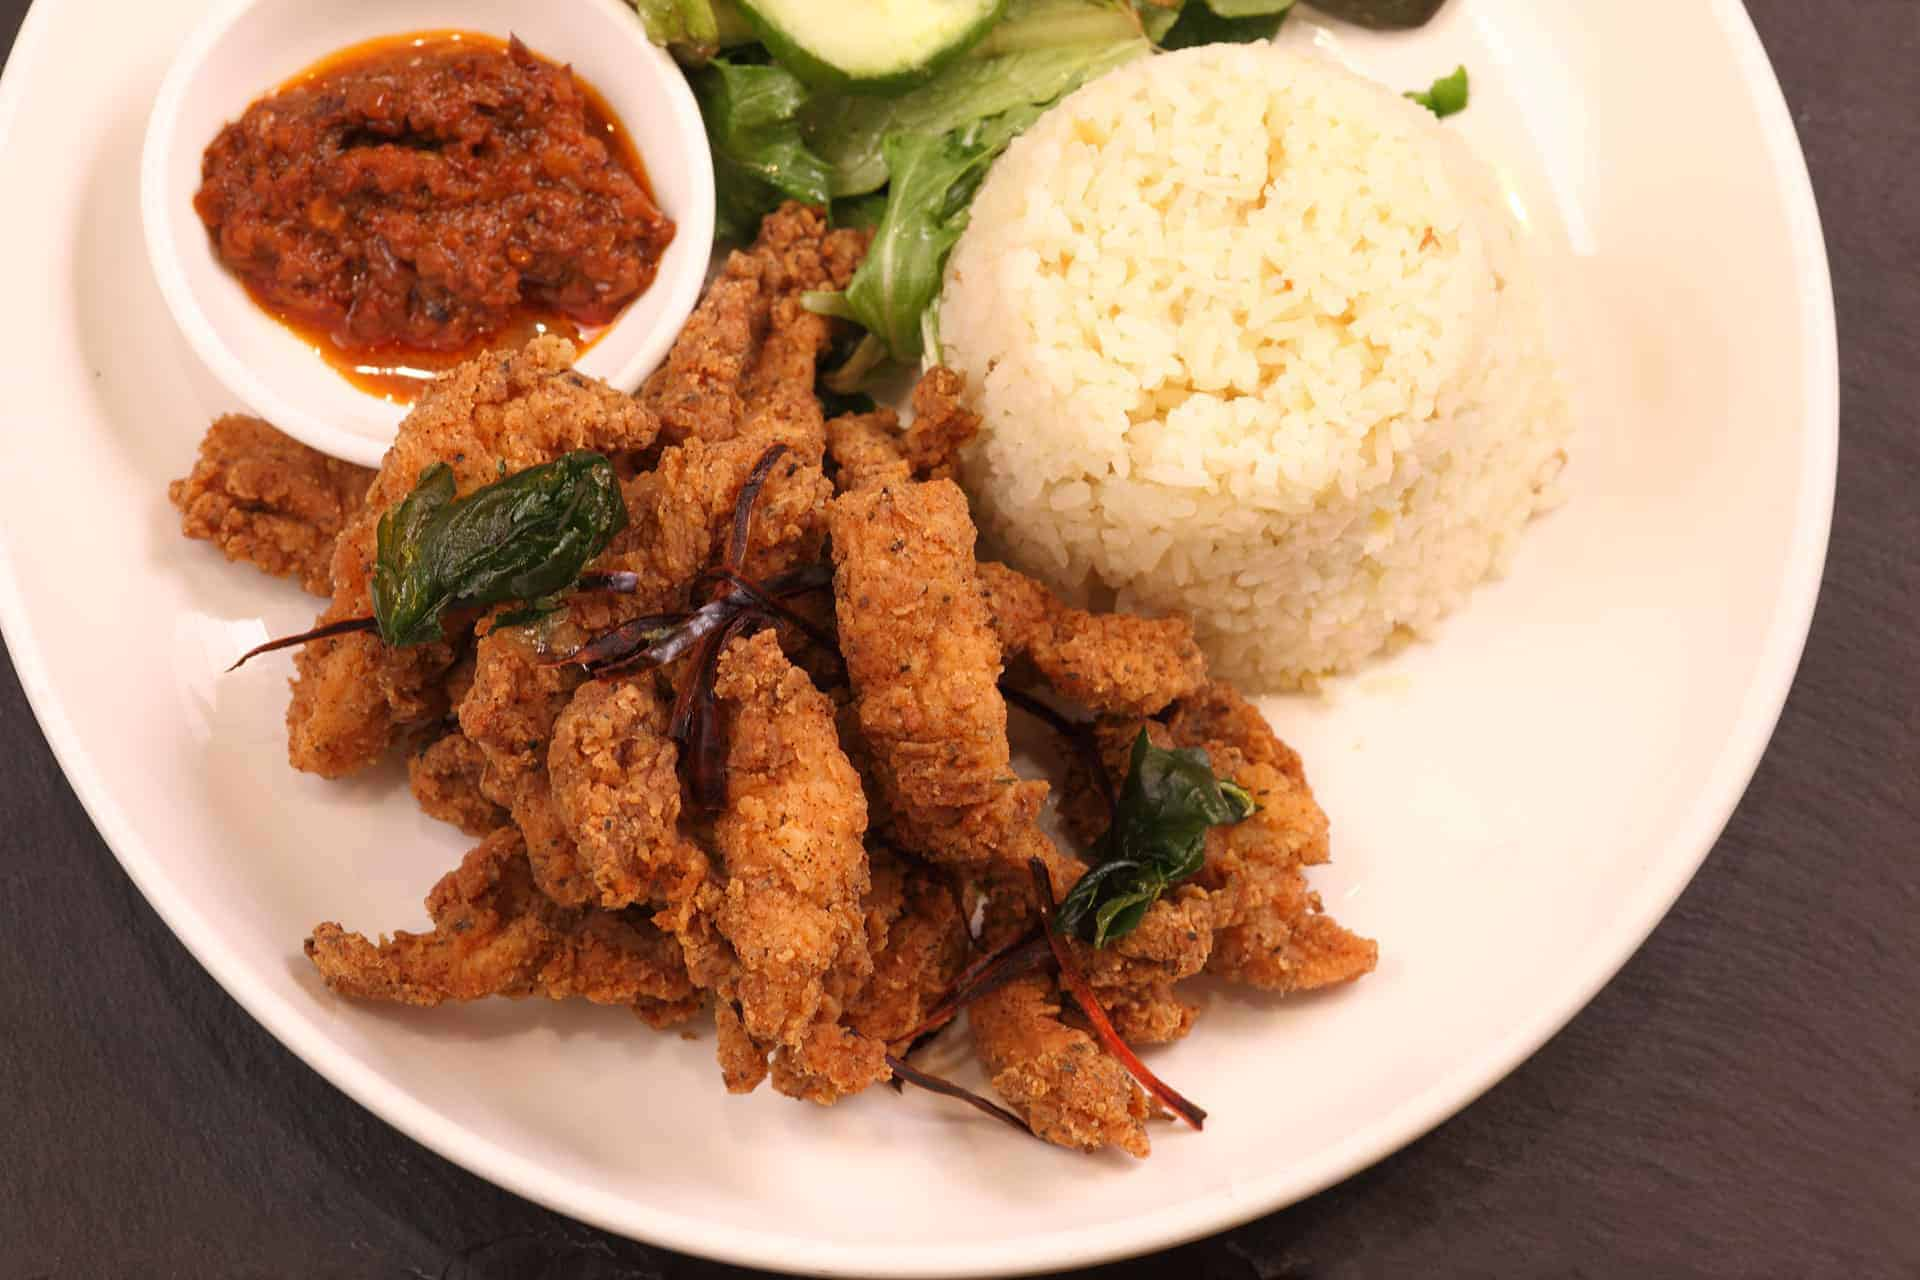 Asian meals for dine in, delivery or take away from Bar Cupola Cafe Restaurant Angel Place Sydney